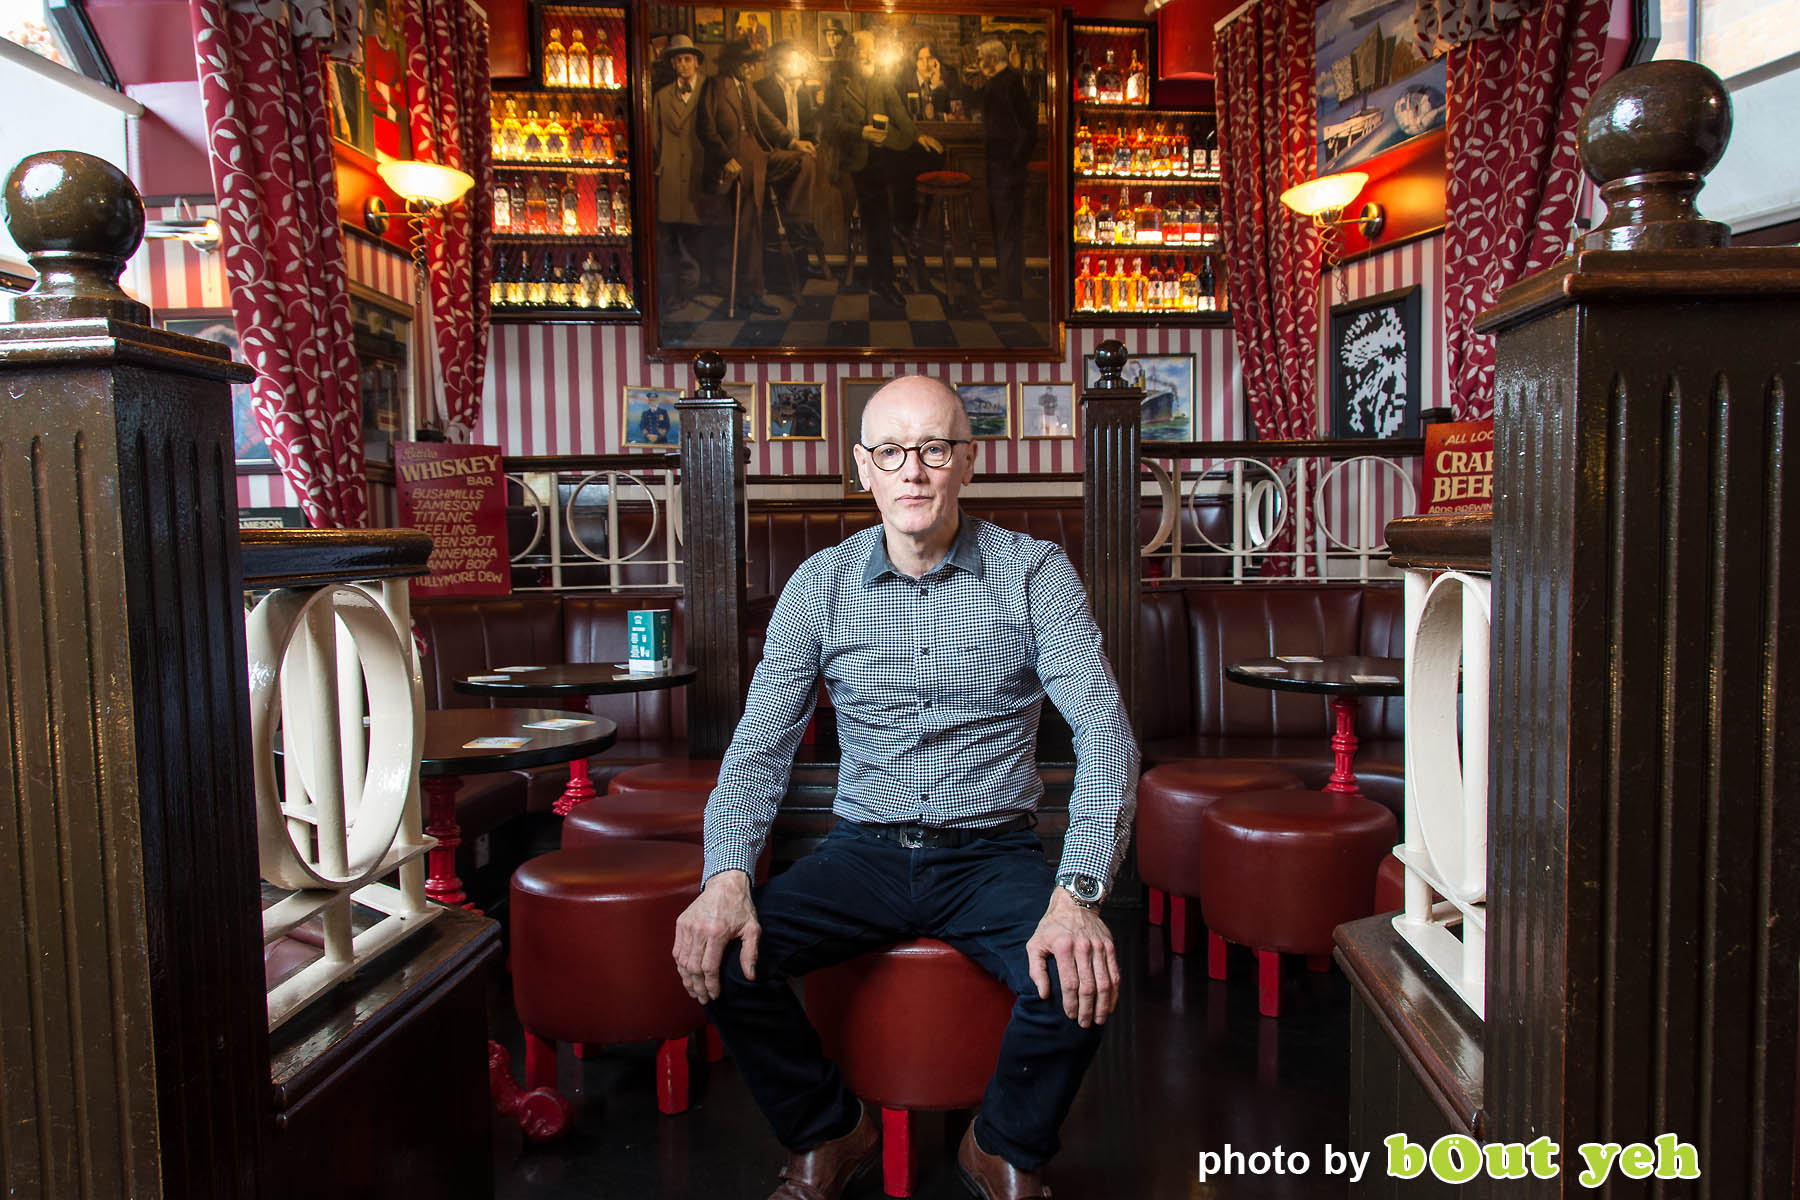 John Bittles, Bittles Bar, by Bout Yeh photographers Belfast - photo 5008. Editorial feature about John Bittles, owner of Bittles Bar, Belfast, Northern Ireland